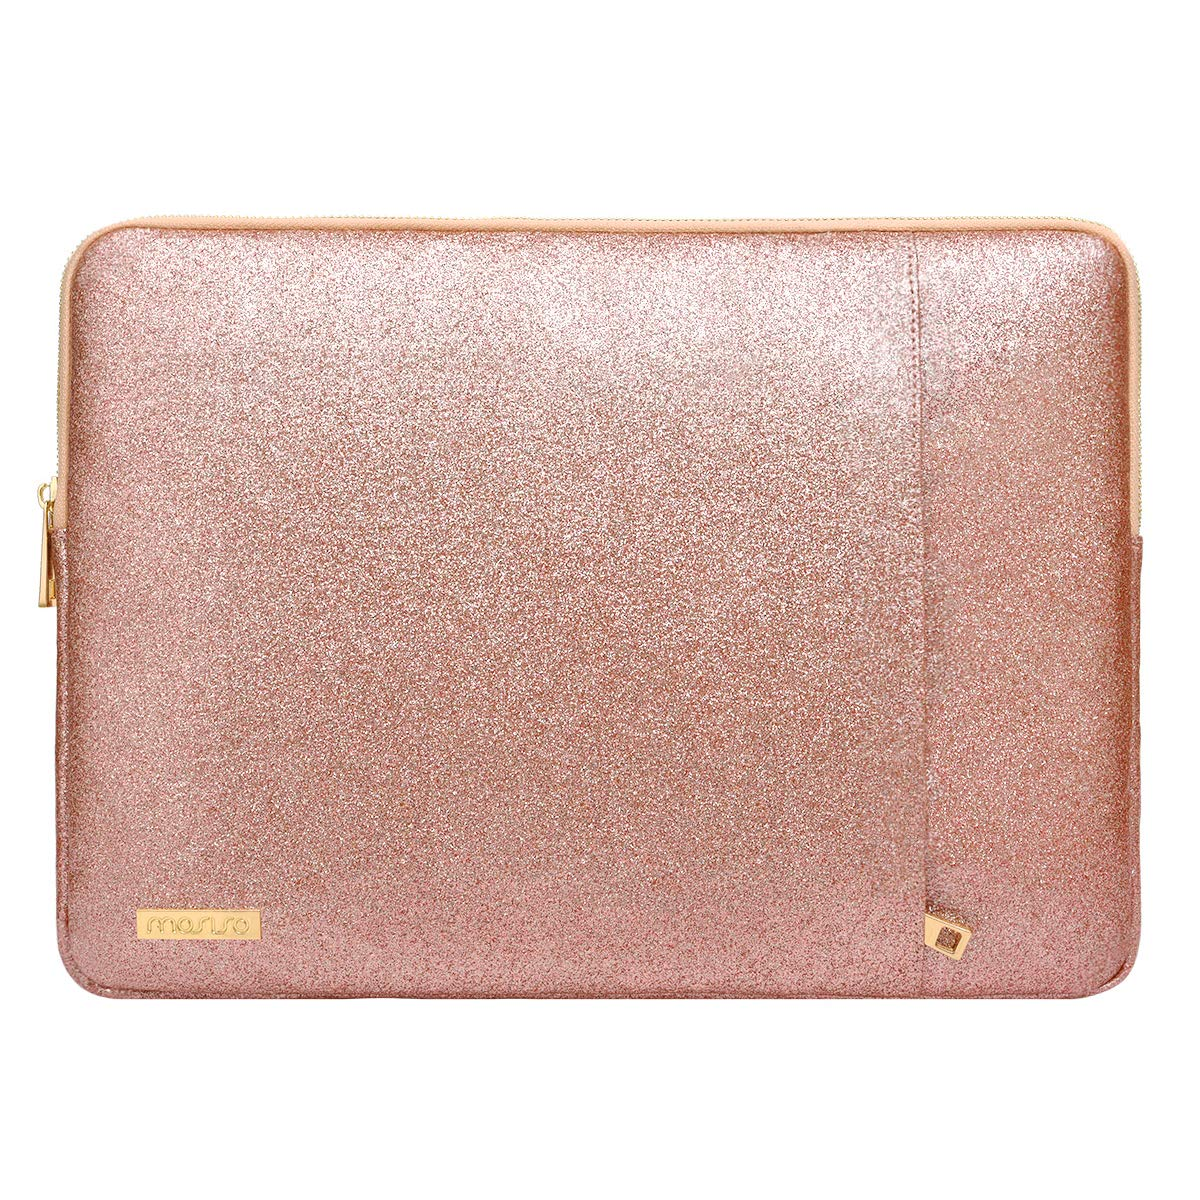 MOSISO Laptop Sleeve Compatible 13-13.3 Inch MacBook Pro Retina/MacBook Air/Surface Laptop 2 2018 2017/Surface Book, PU Leather Vertical Style Super Padded Bag Waterproof Case, Shining Rose Gold